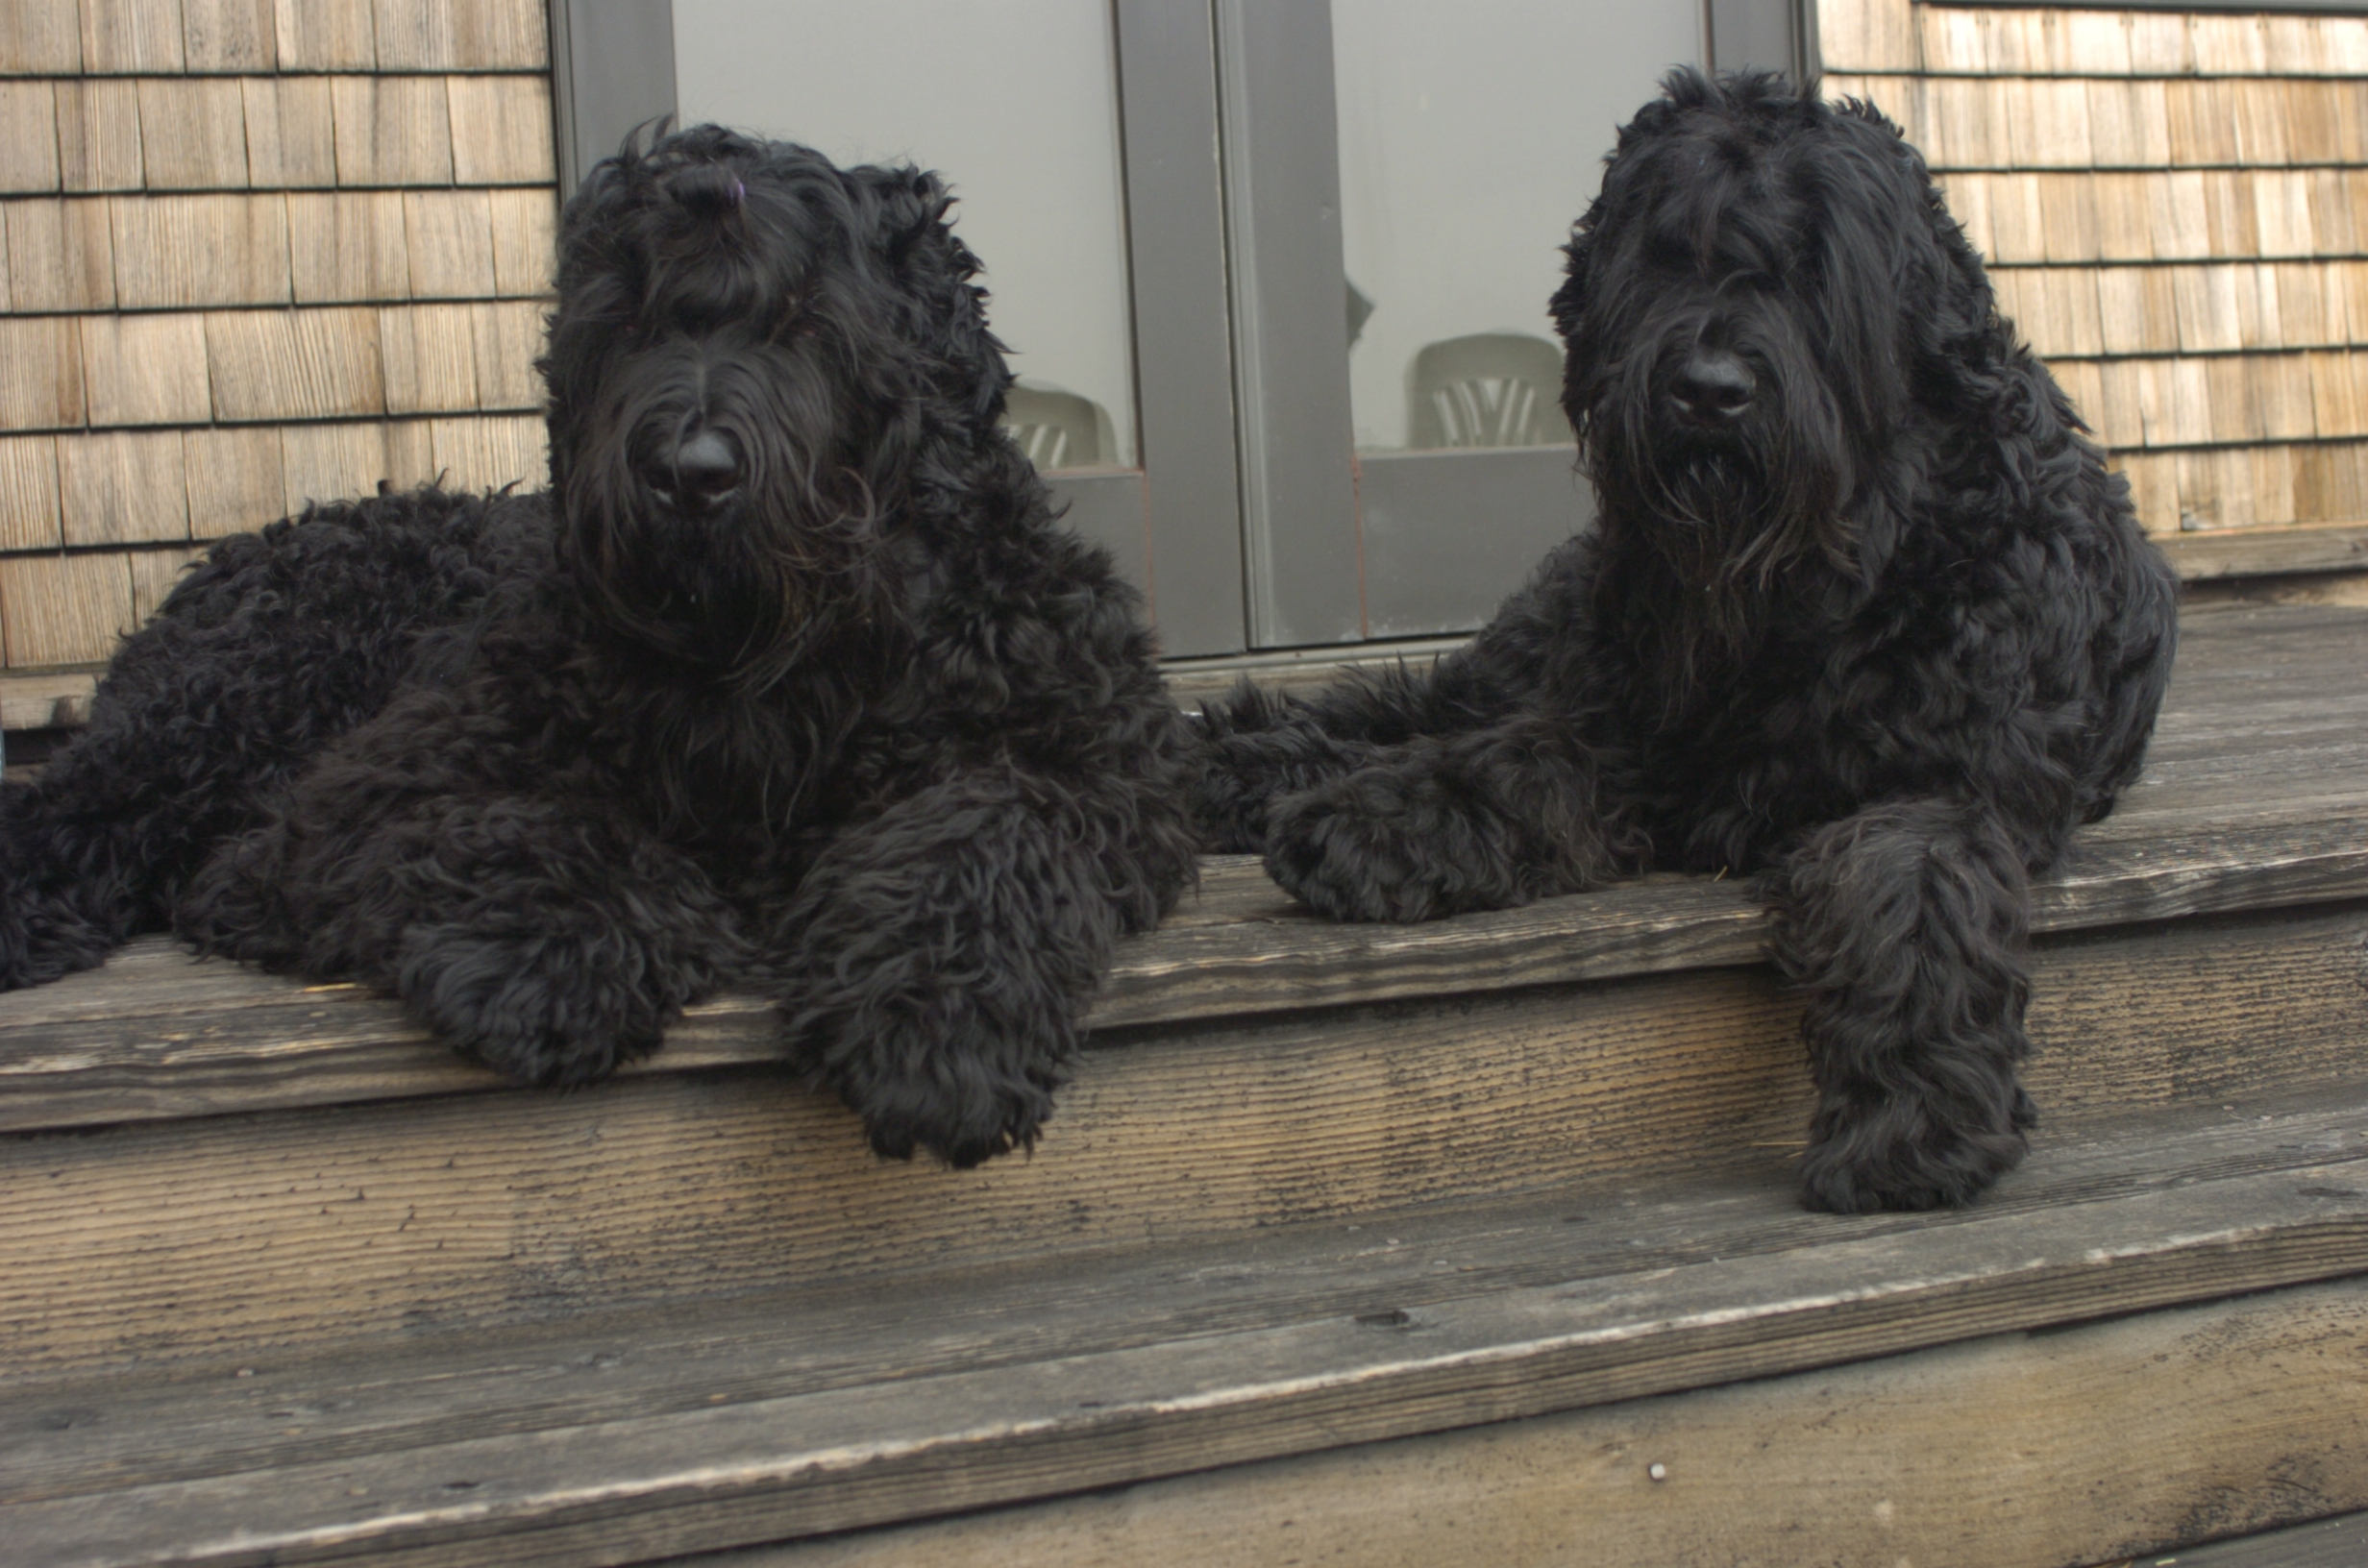 Two Black Russian Terrier dogs on the porch wallpaper